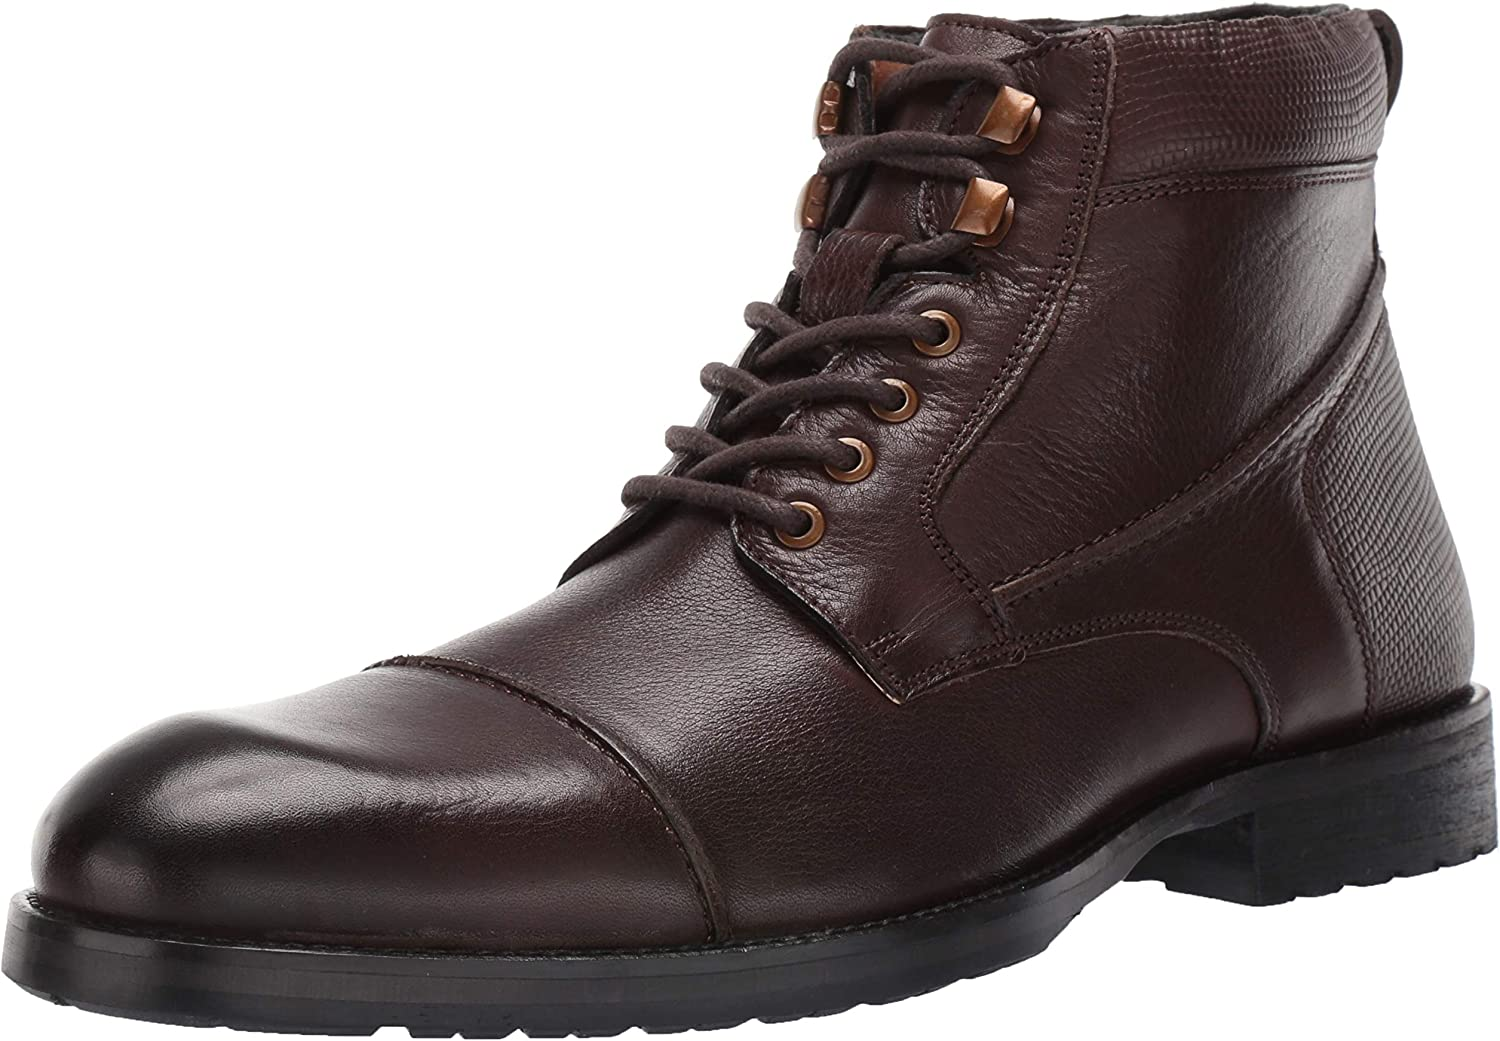 Kenneth Cole REACTION Men's Boot Bombing new work Max 73% OFF B Brewster